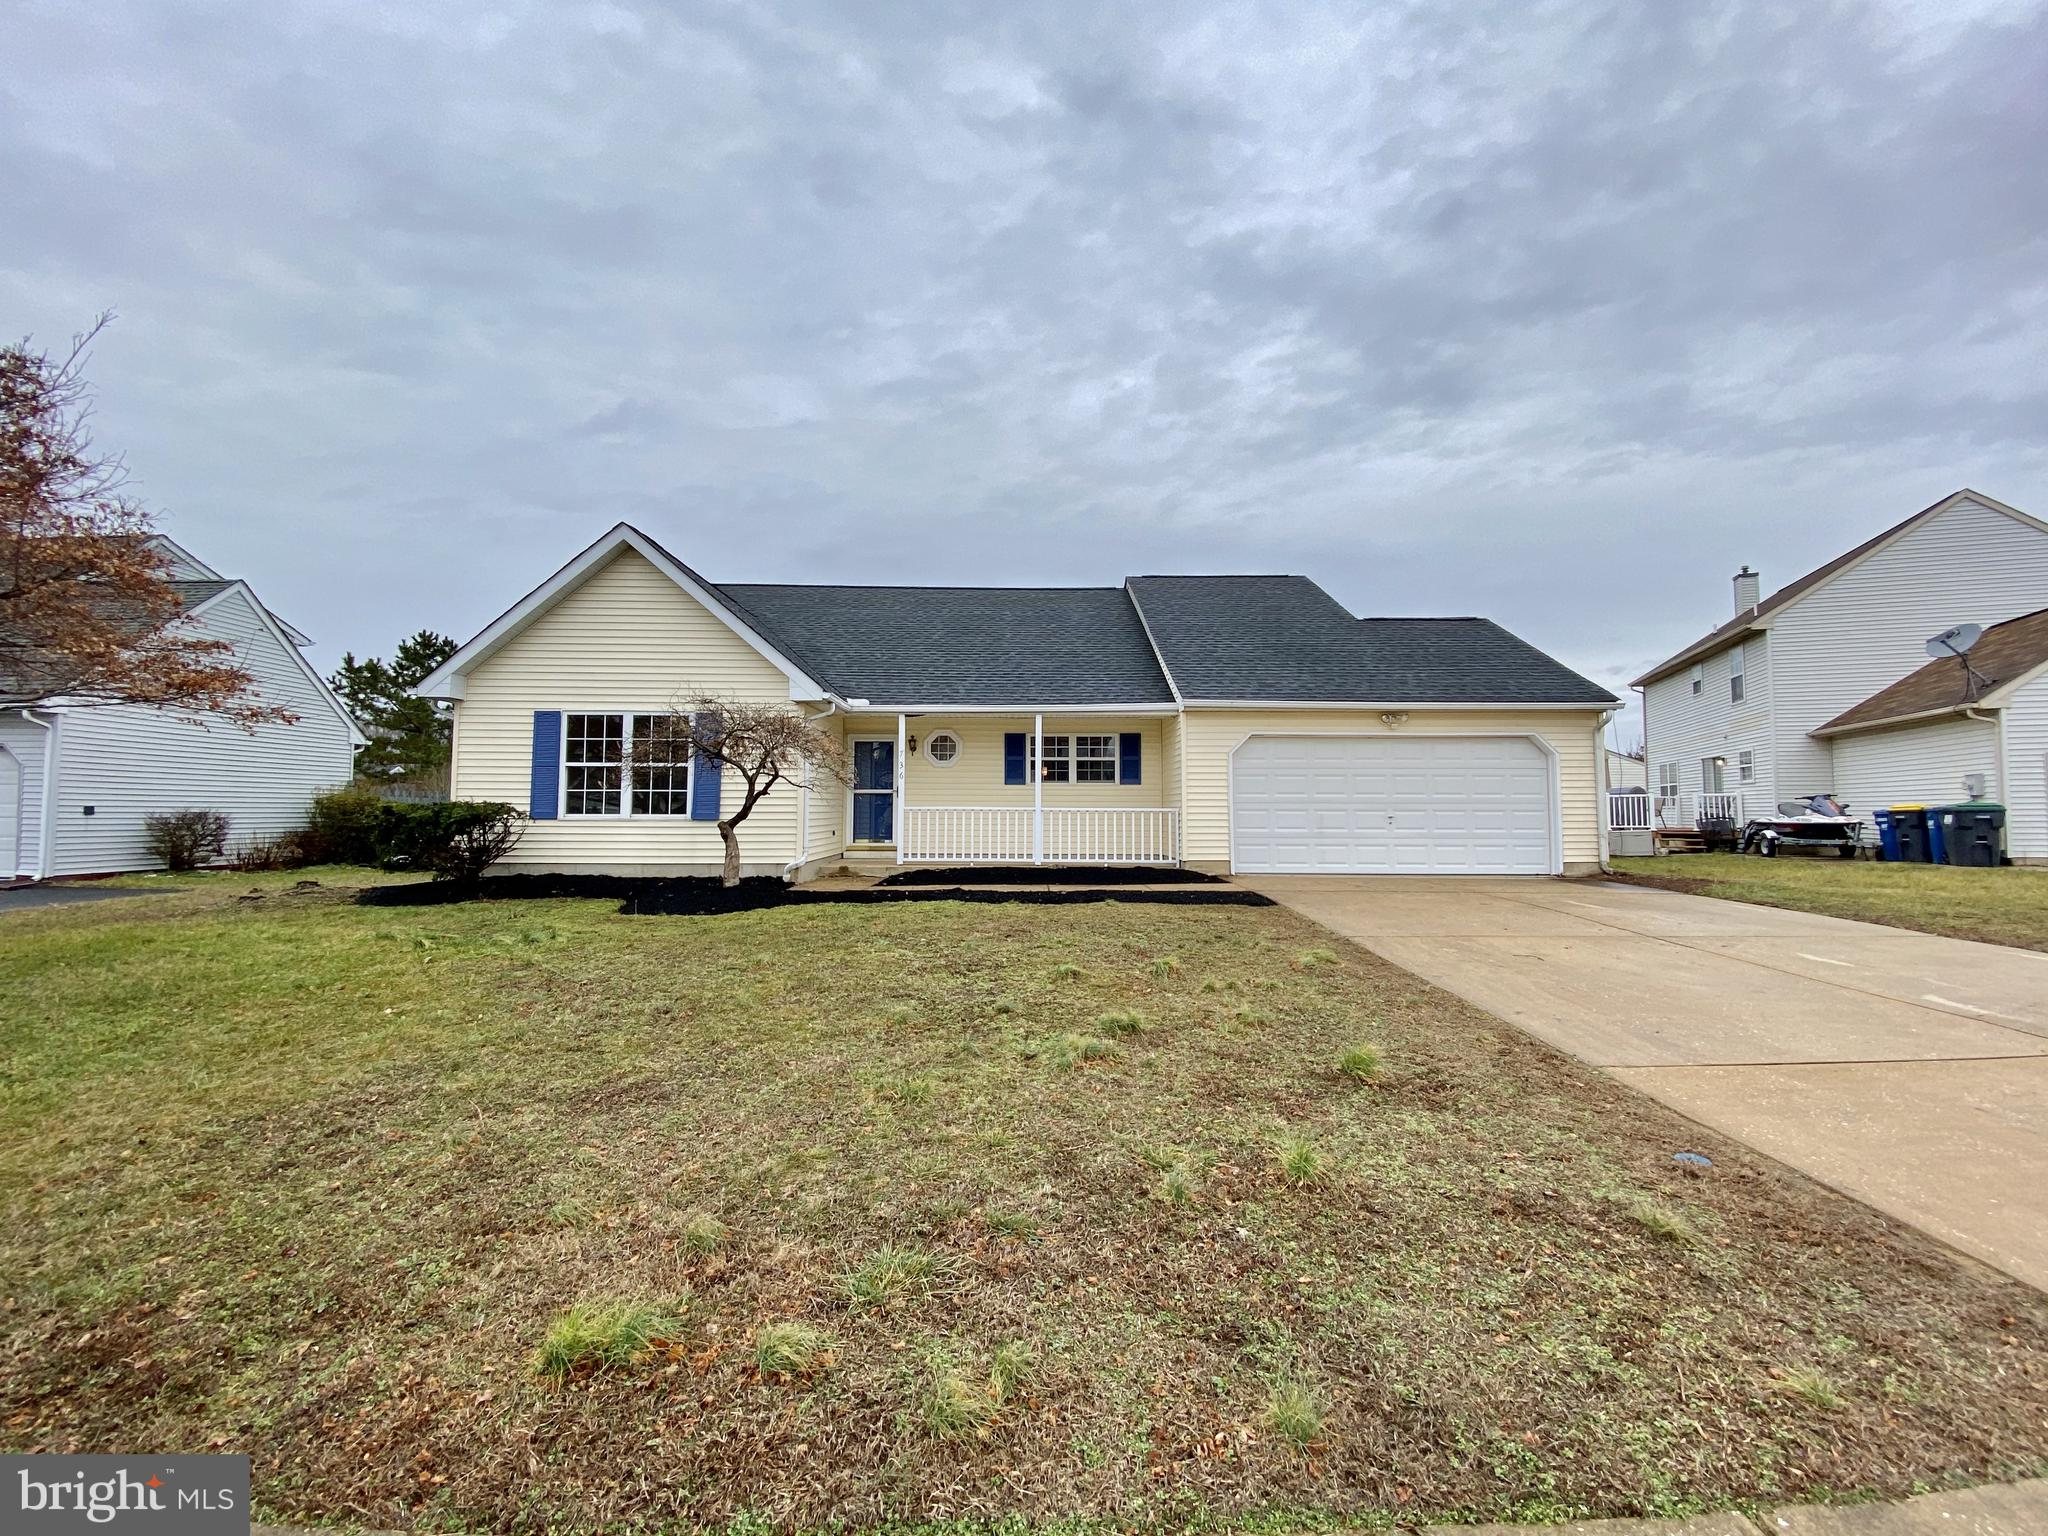 736 STAGHORN DRIVE, NEW CASTLE, DE 19720